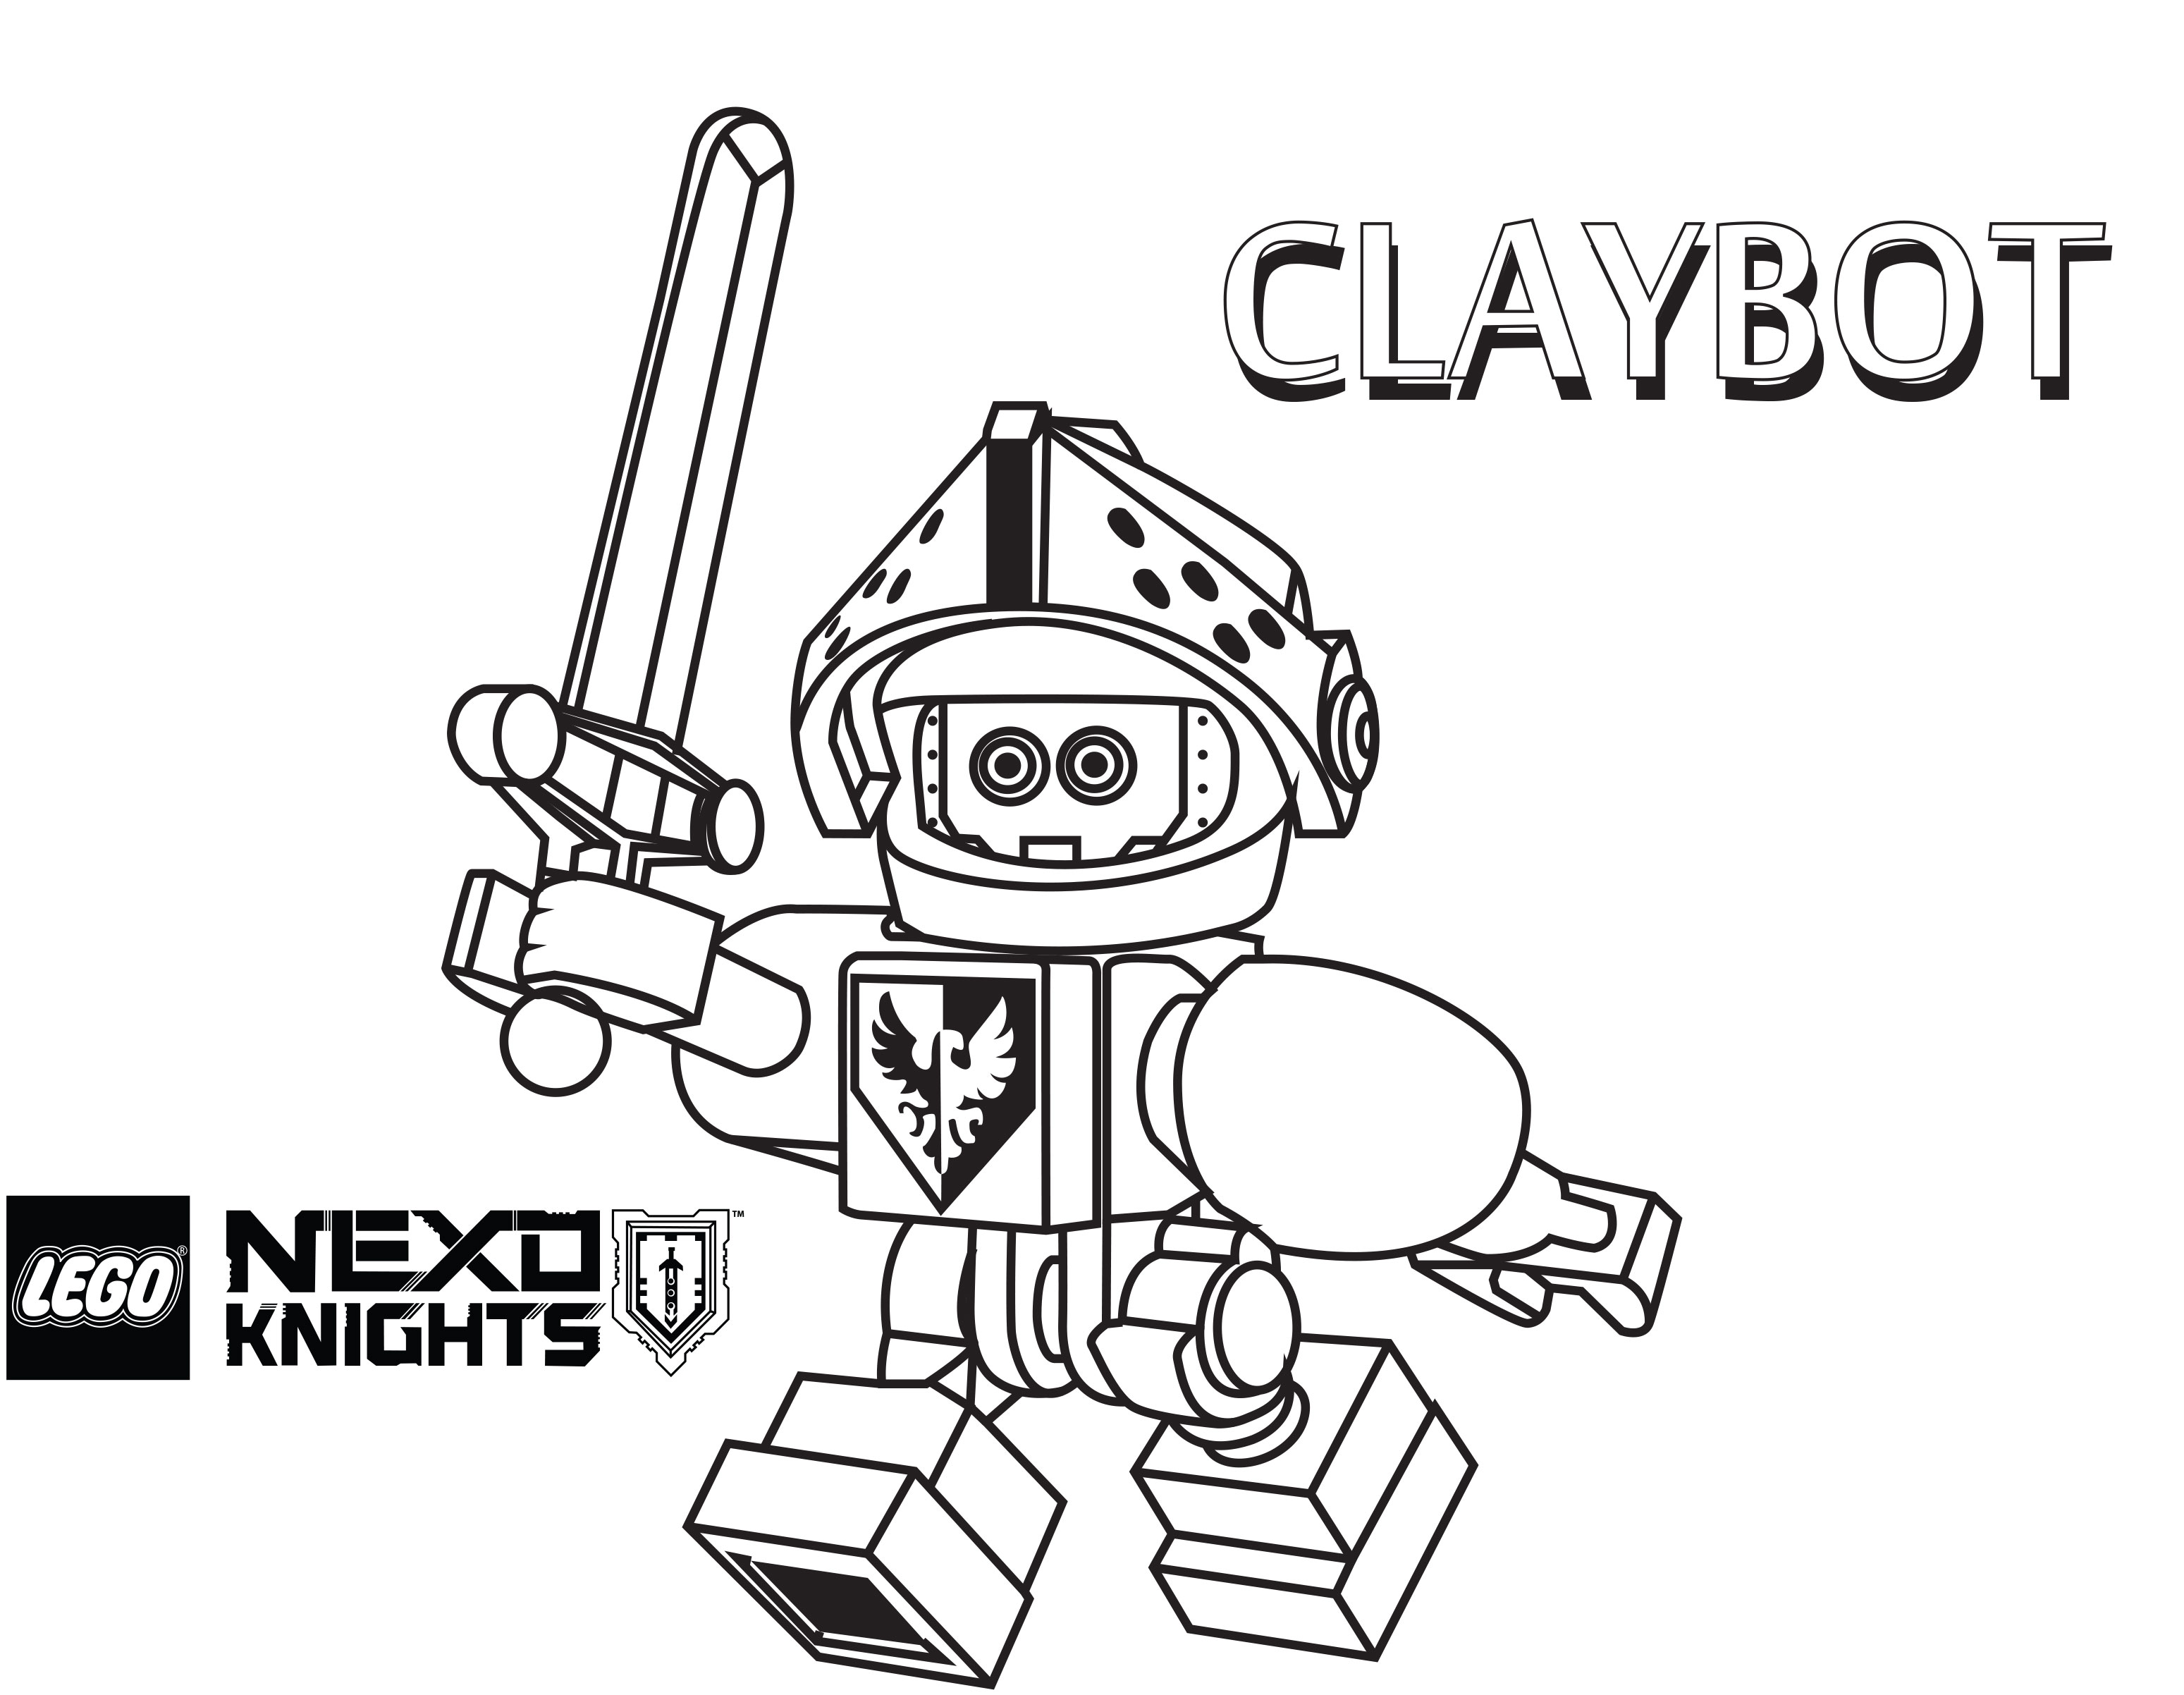 3098x2404 Lego Nexo Knights Coloring Pages Claybot